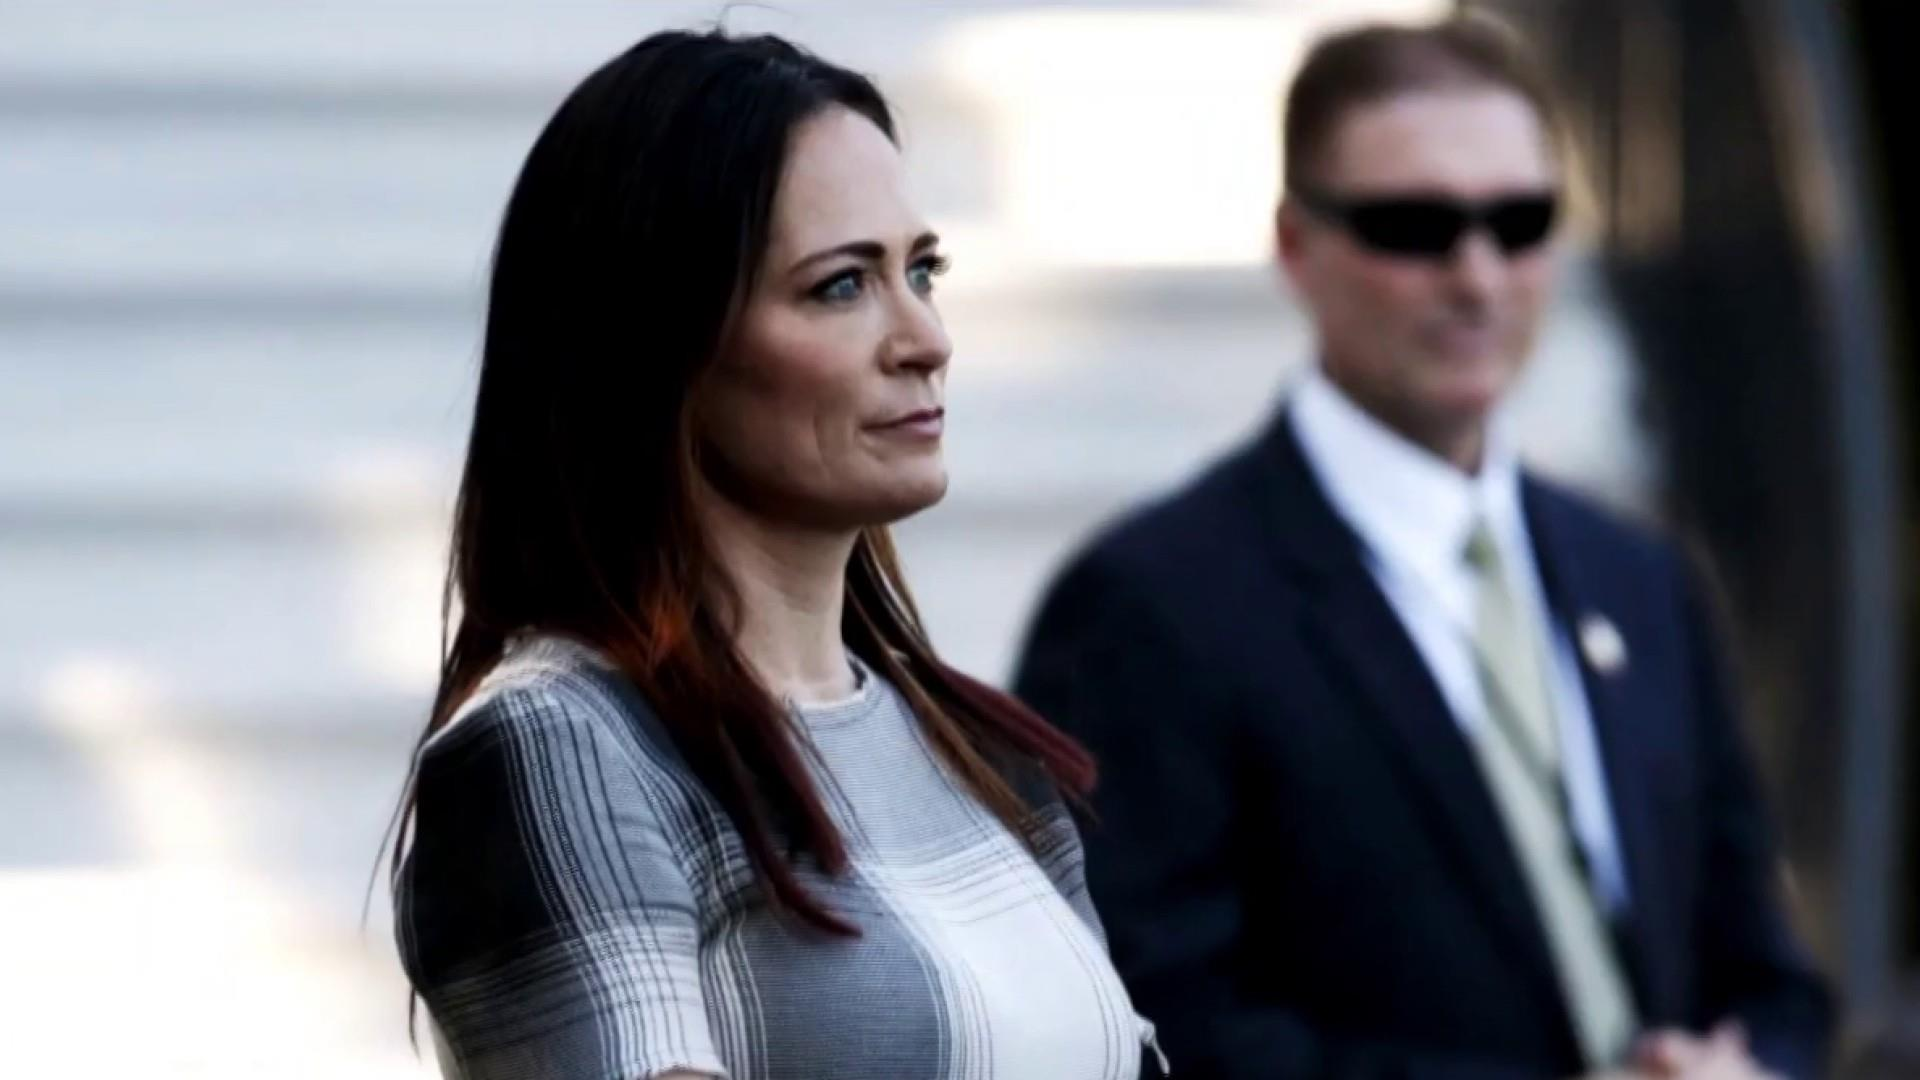 Stephanie Grisham will be the next White House Press Secretary